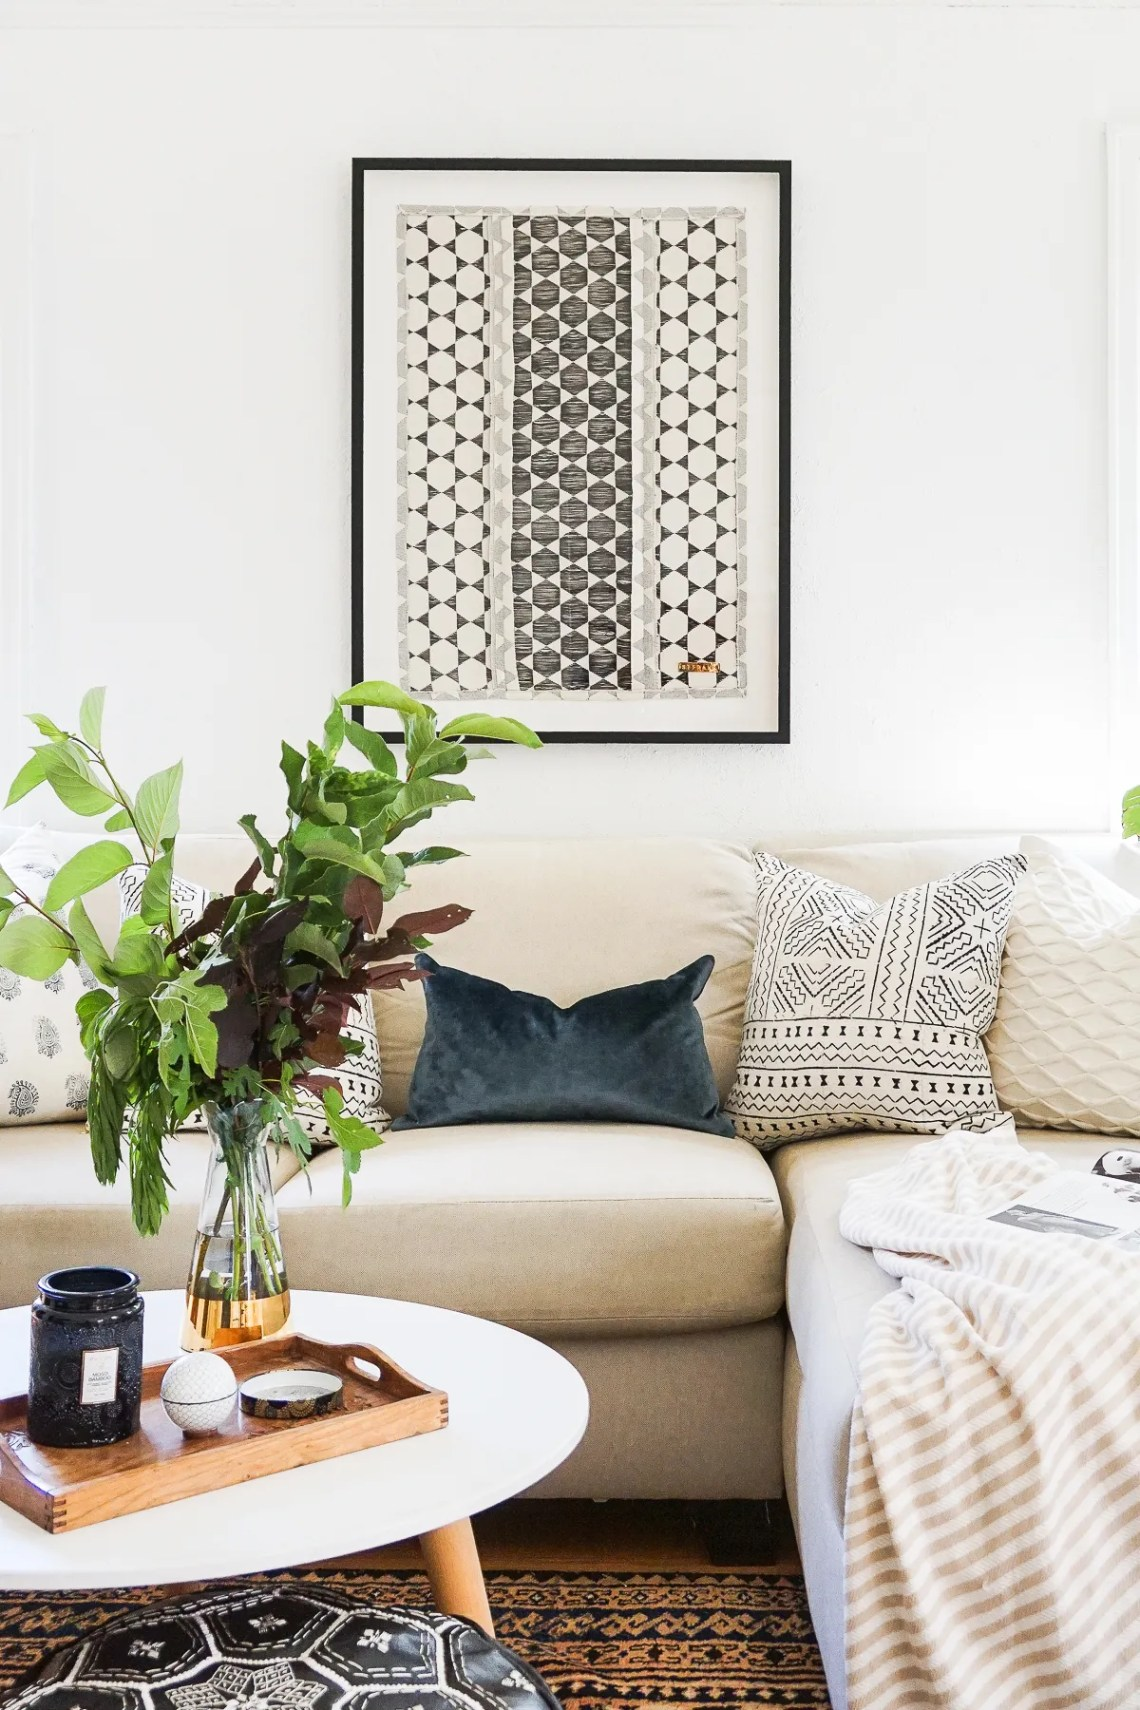 Apply the concept of Mindful design to your home through beautiful handmade home decor from St. Frank.